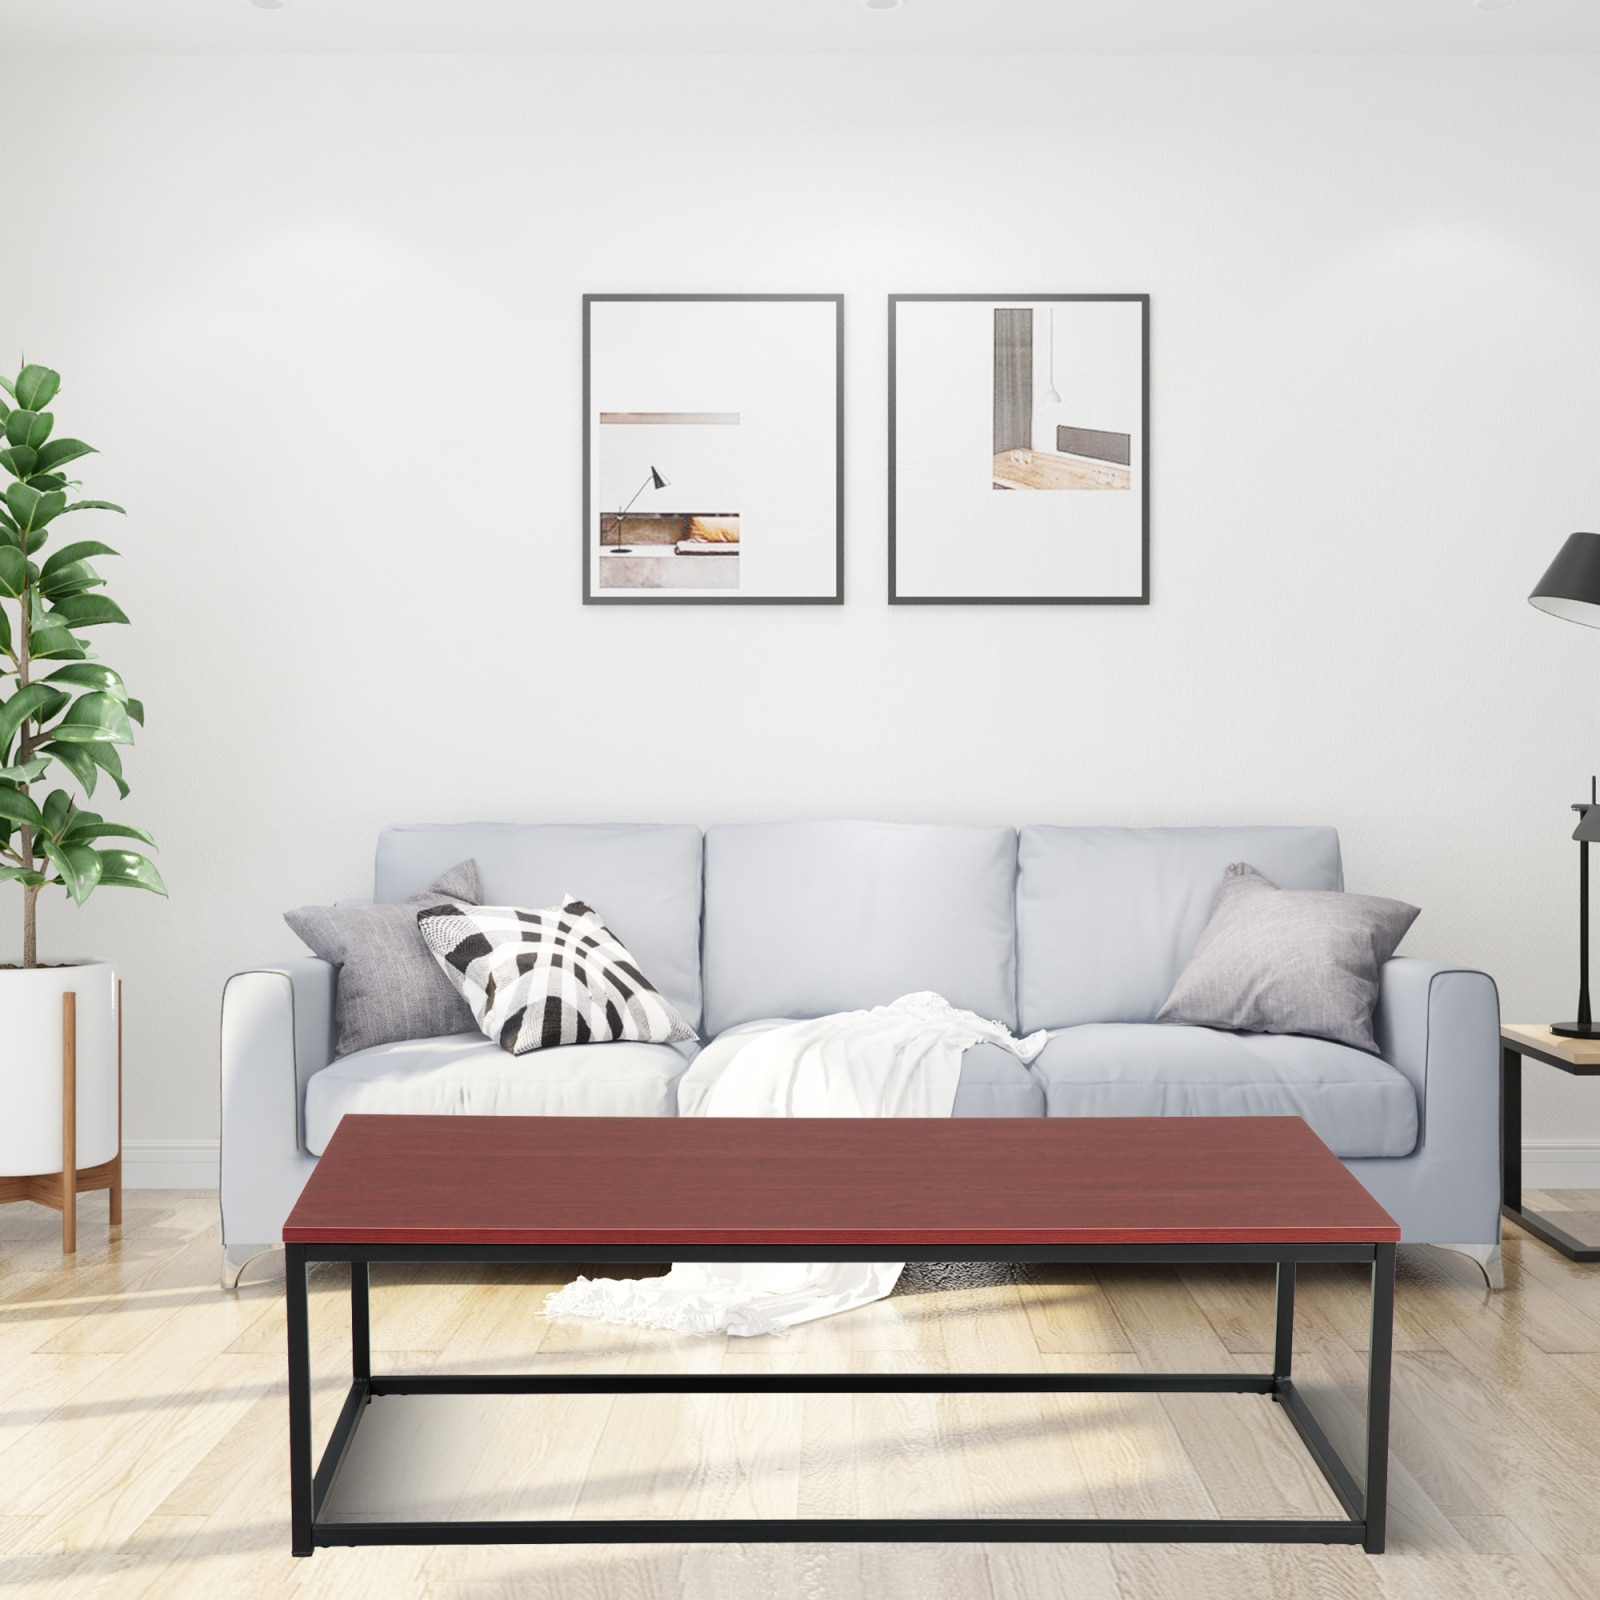 COFFEE TABLE(RED BROWN)(rectangular) +for Kitchen, Restaurant, Bedroom, Living Room And Many Other Occasions